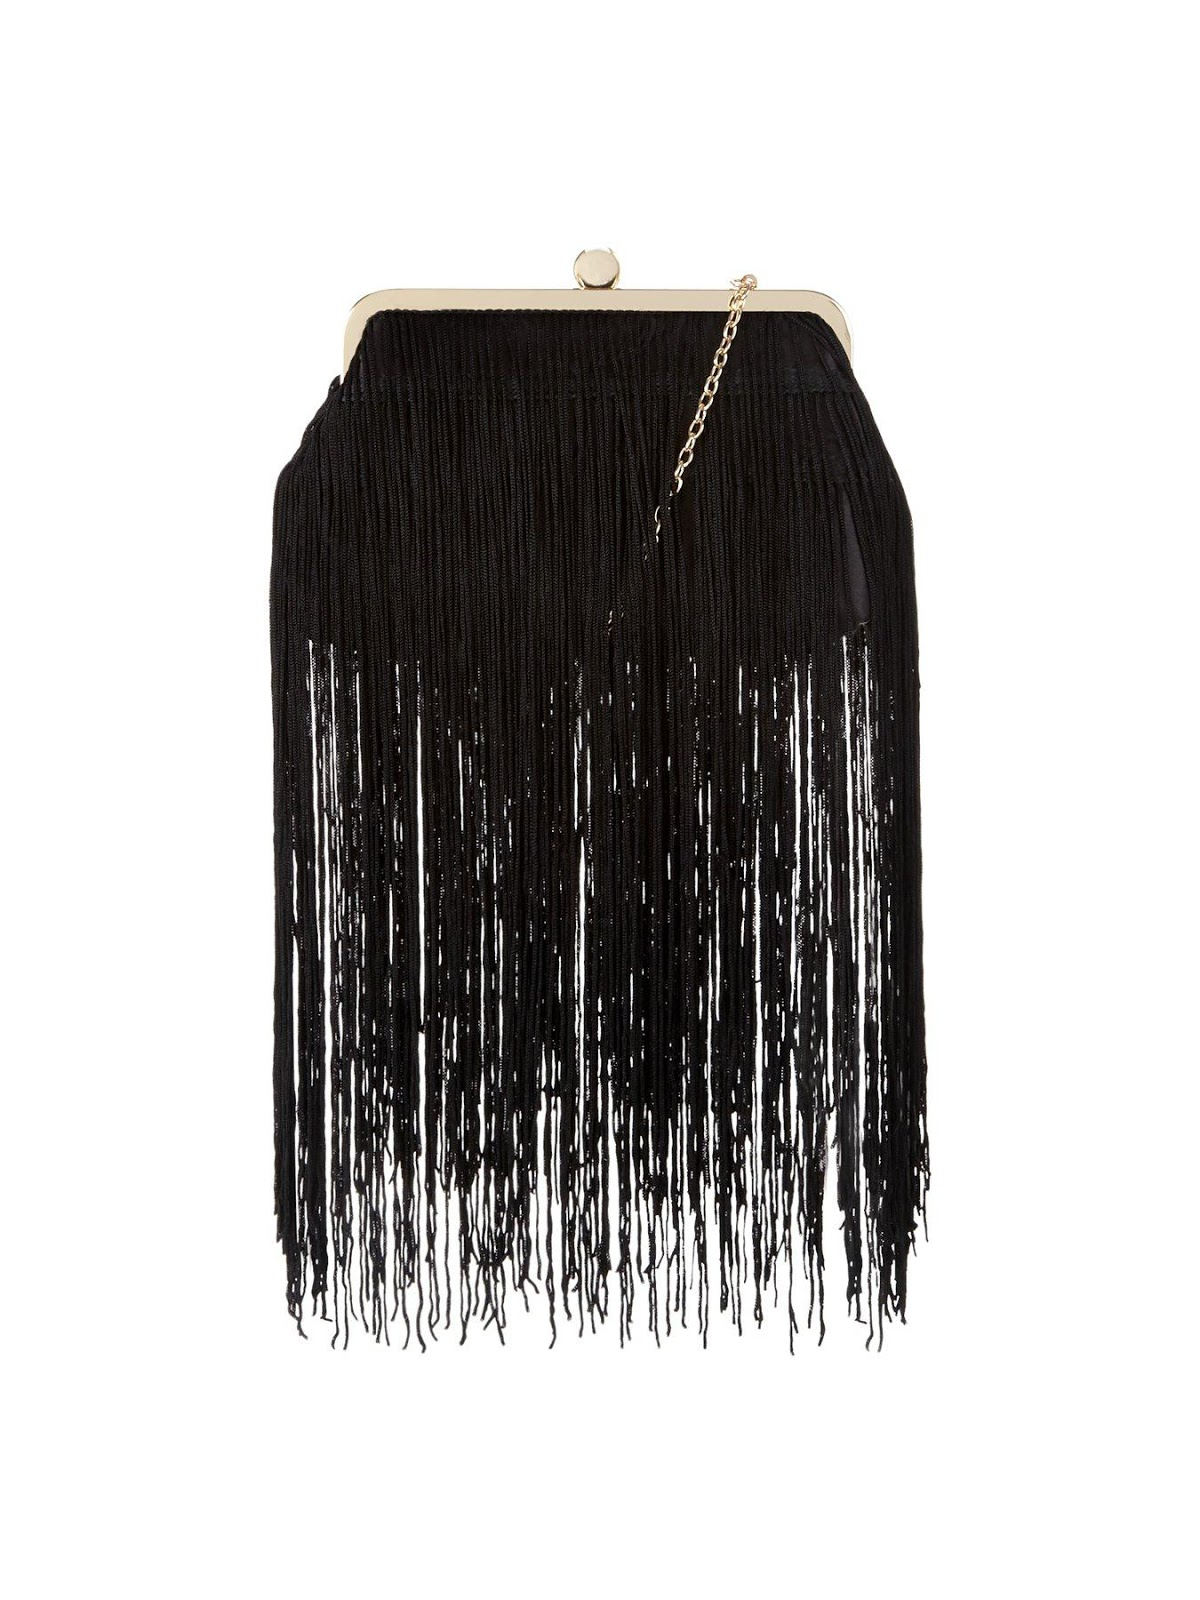 Triple Layer Fringed Clutch